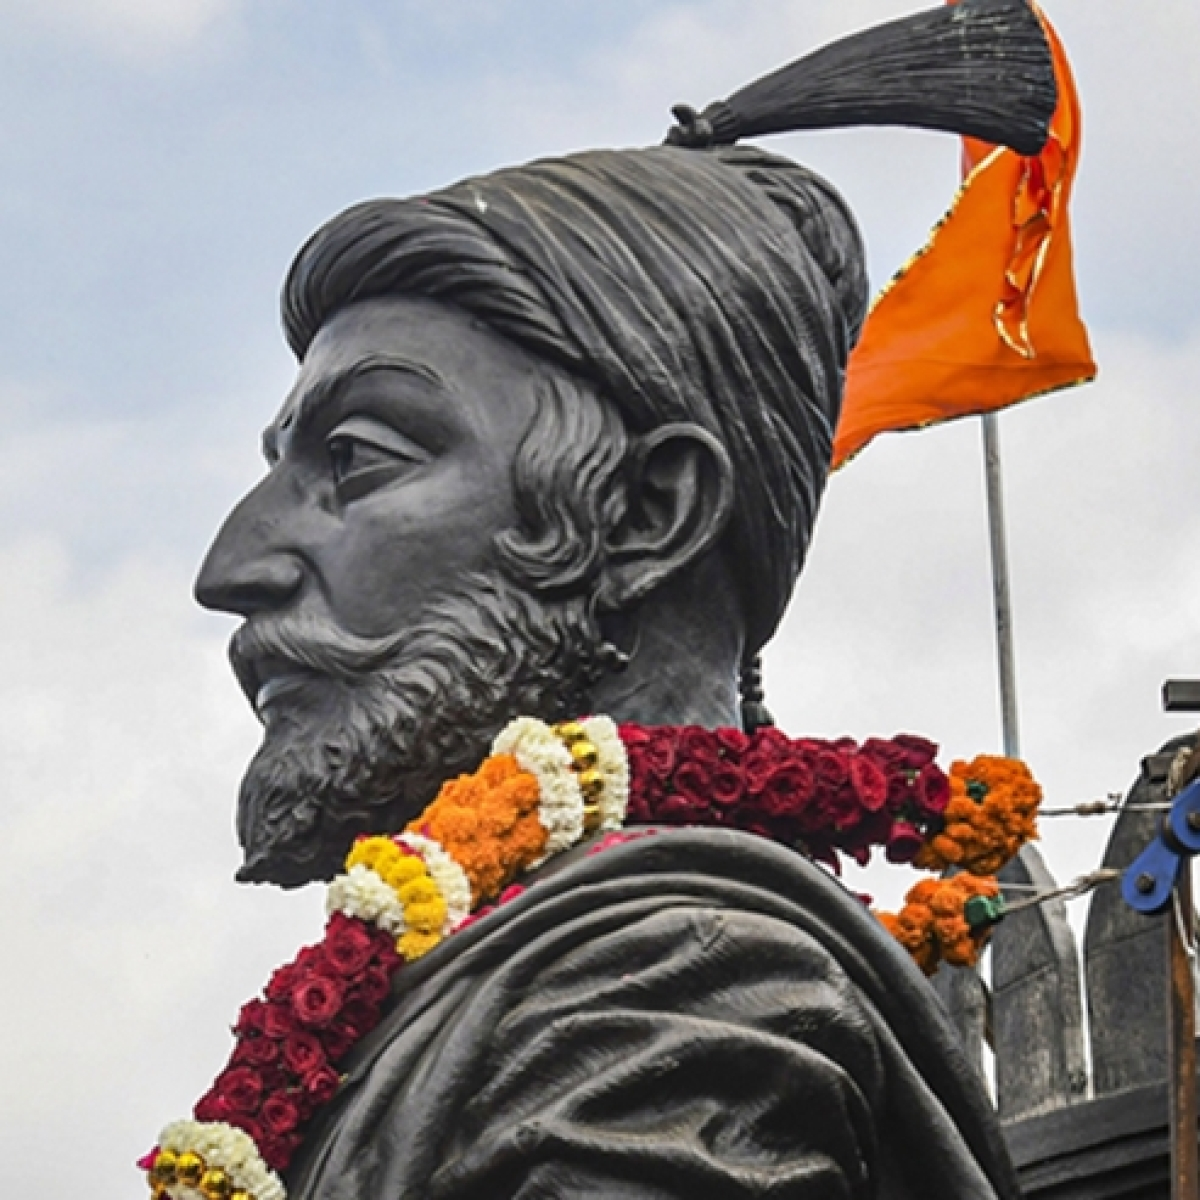 'She insulted our god Chhatrapati Shivaji Maharaj...': Outrage over comedian Agrima Joshua's comments continue on social media